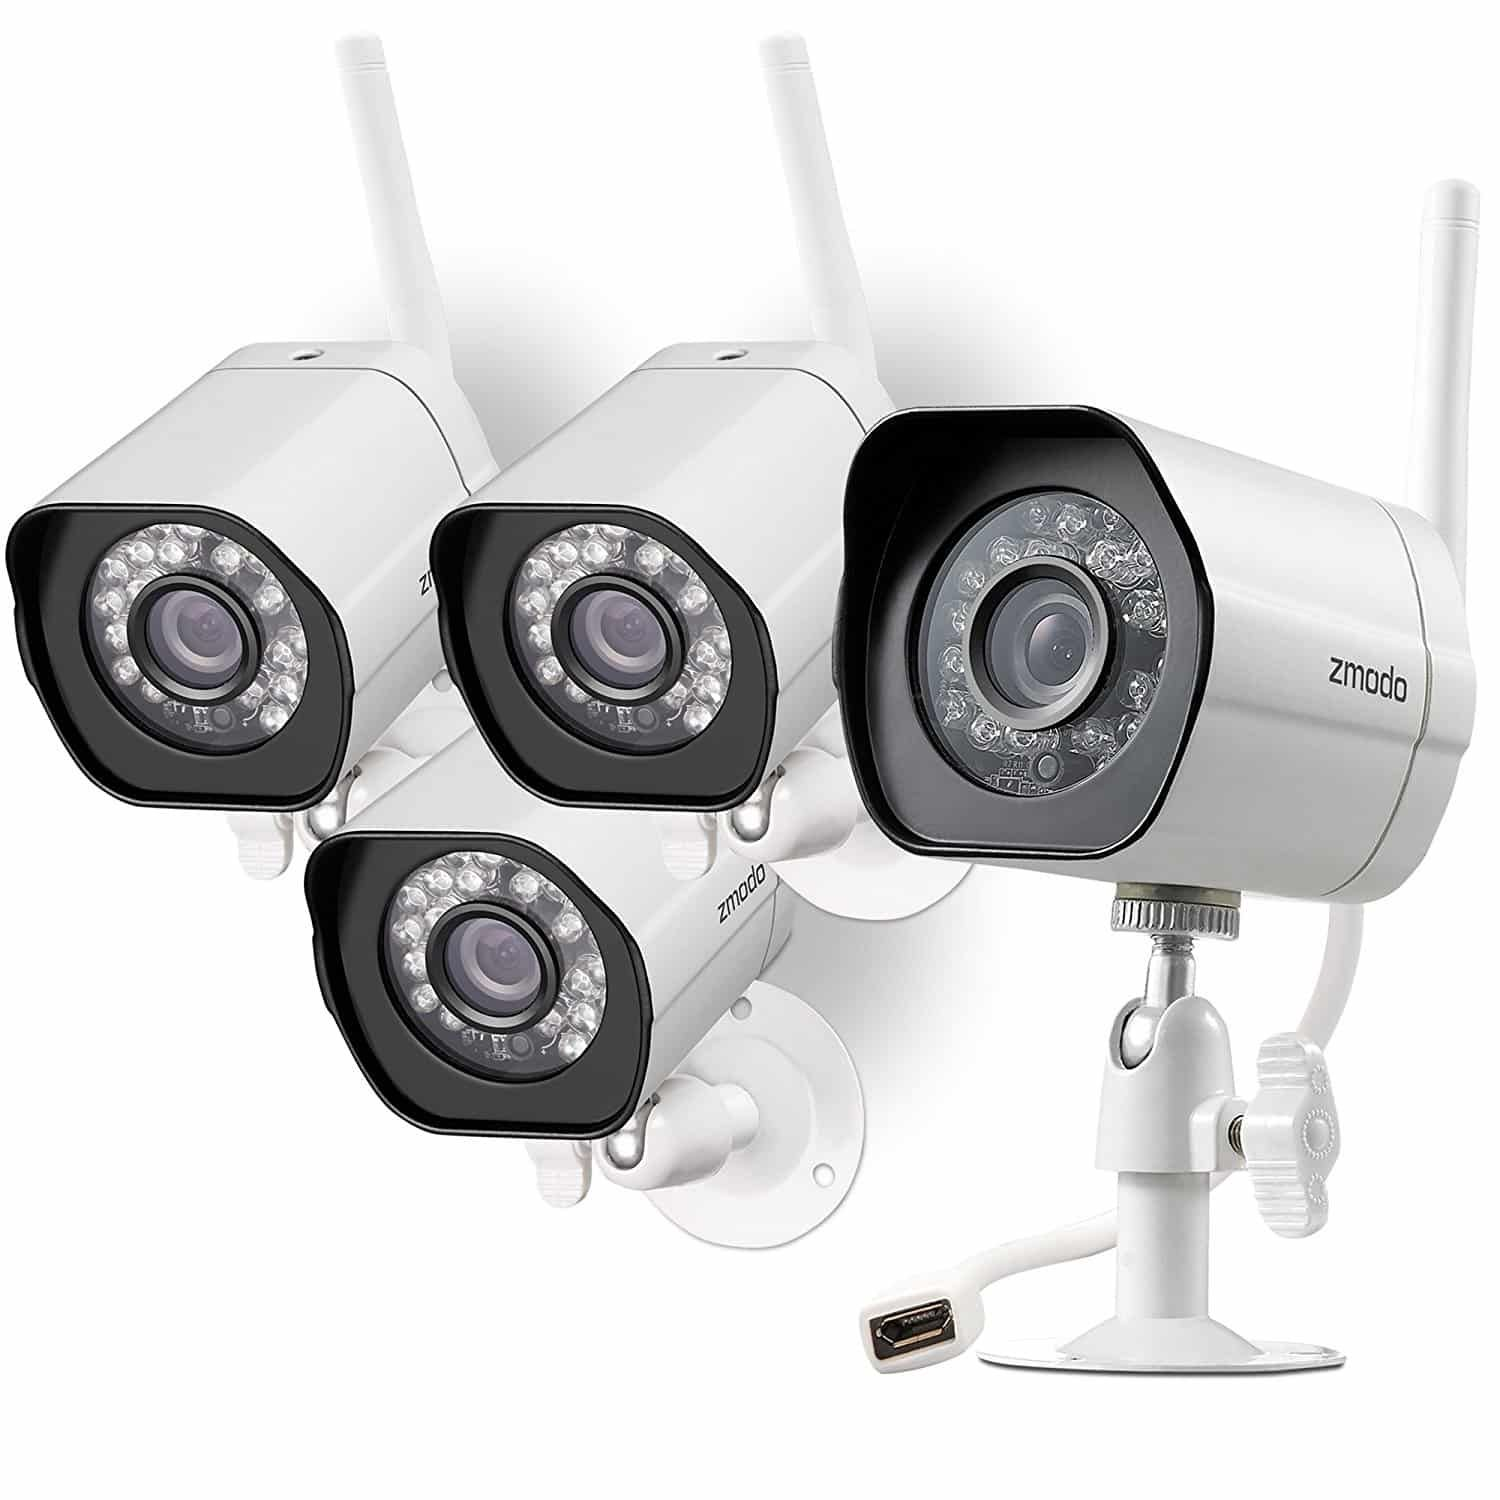 Top 10 Best Security Cameras Reviews In 2018 Cheap Security Cameras Wireless Security Camera System Security Cameras For Home Wireless Home Security Systems